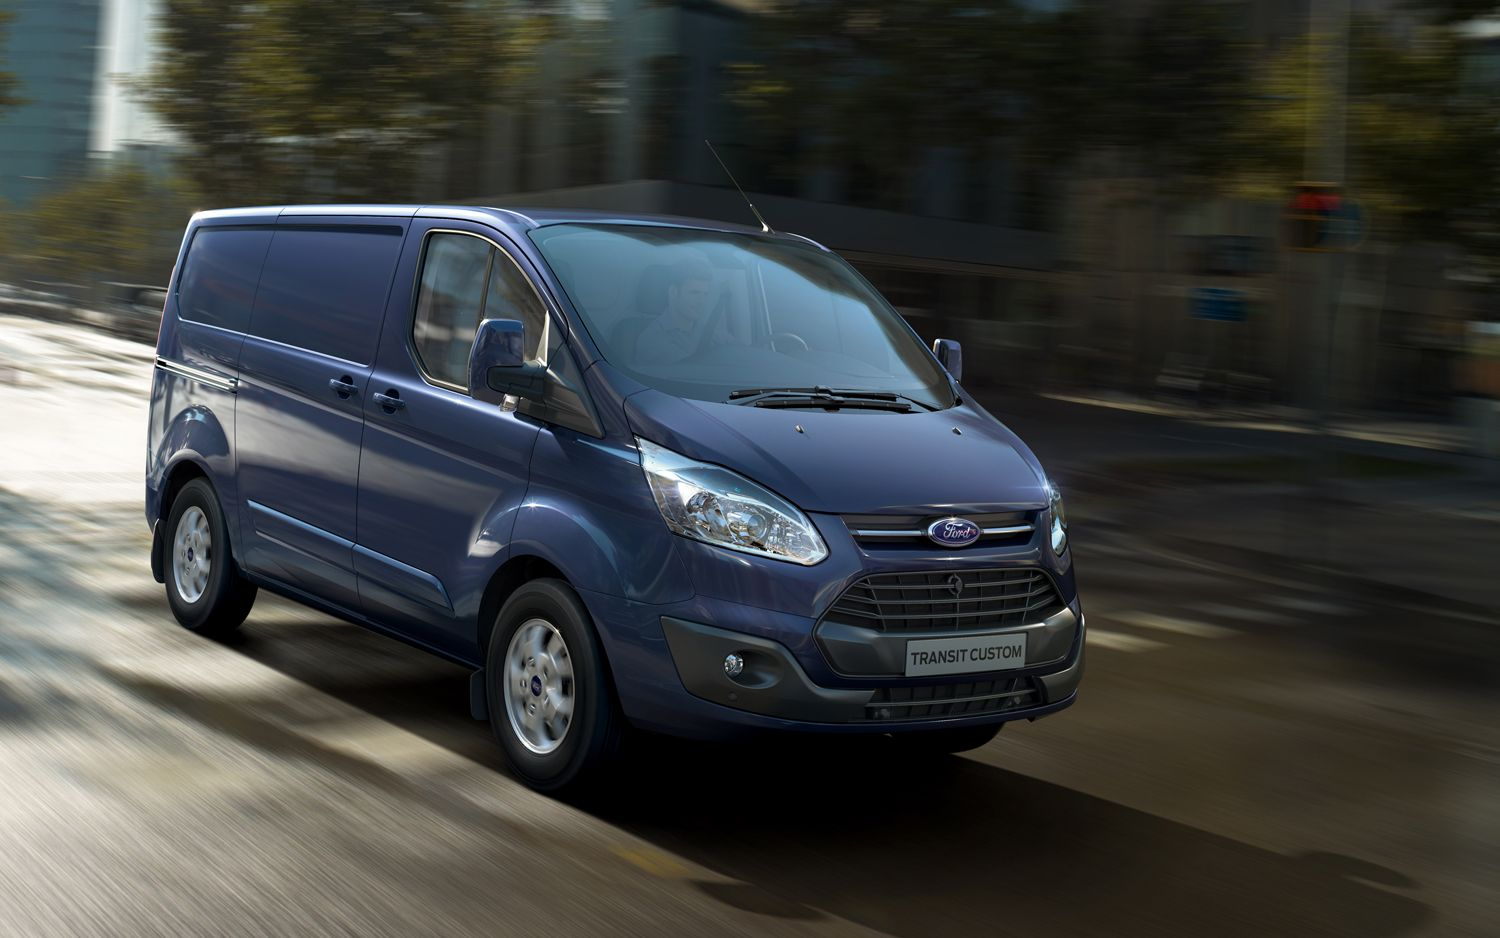 Ford Transit 2013 With Ultimate Space Ford Transit Transit